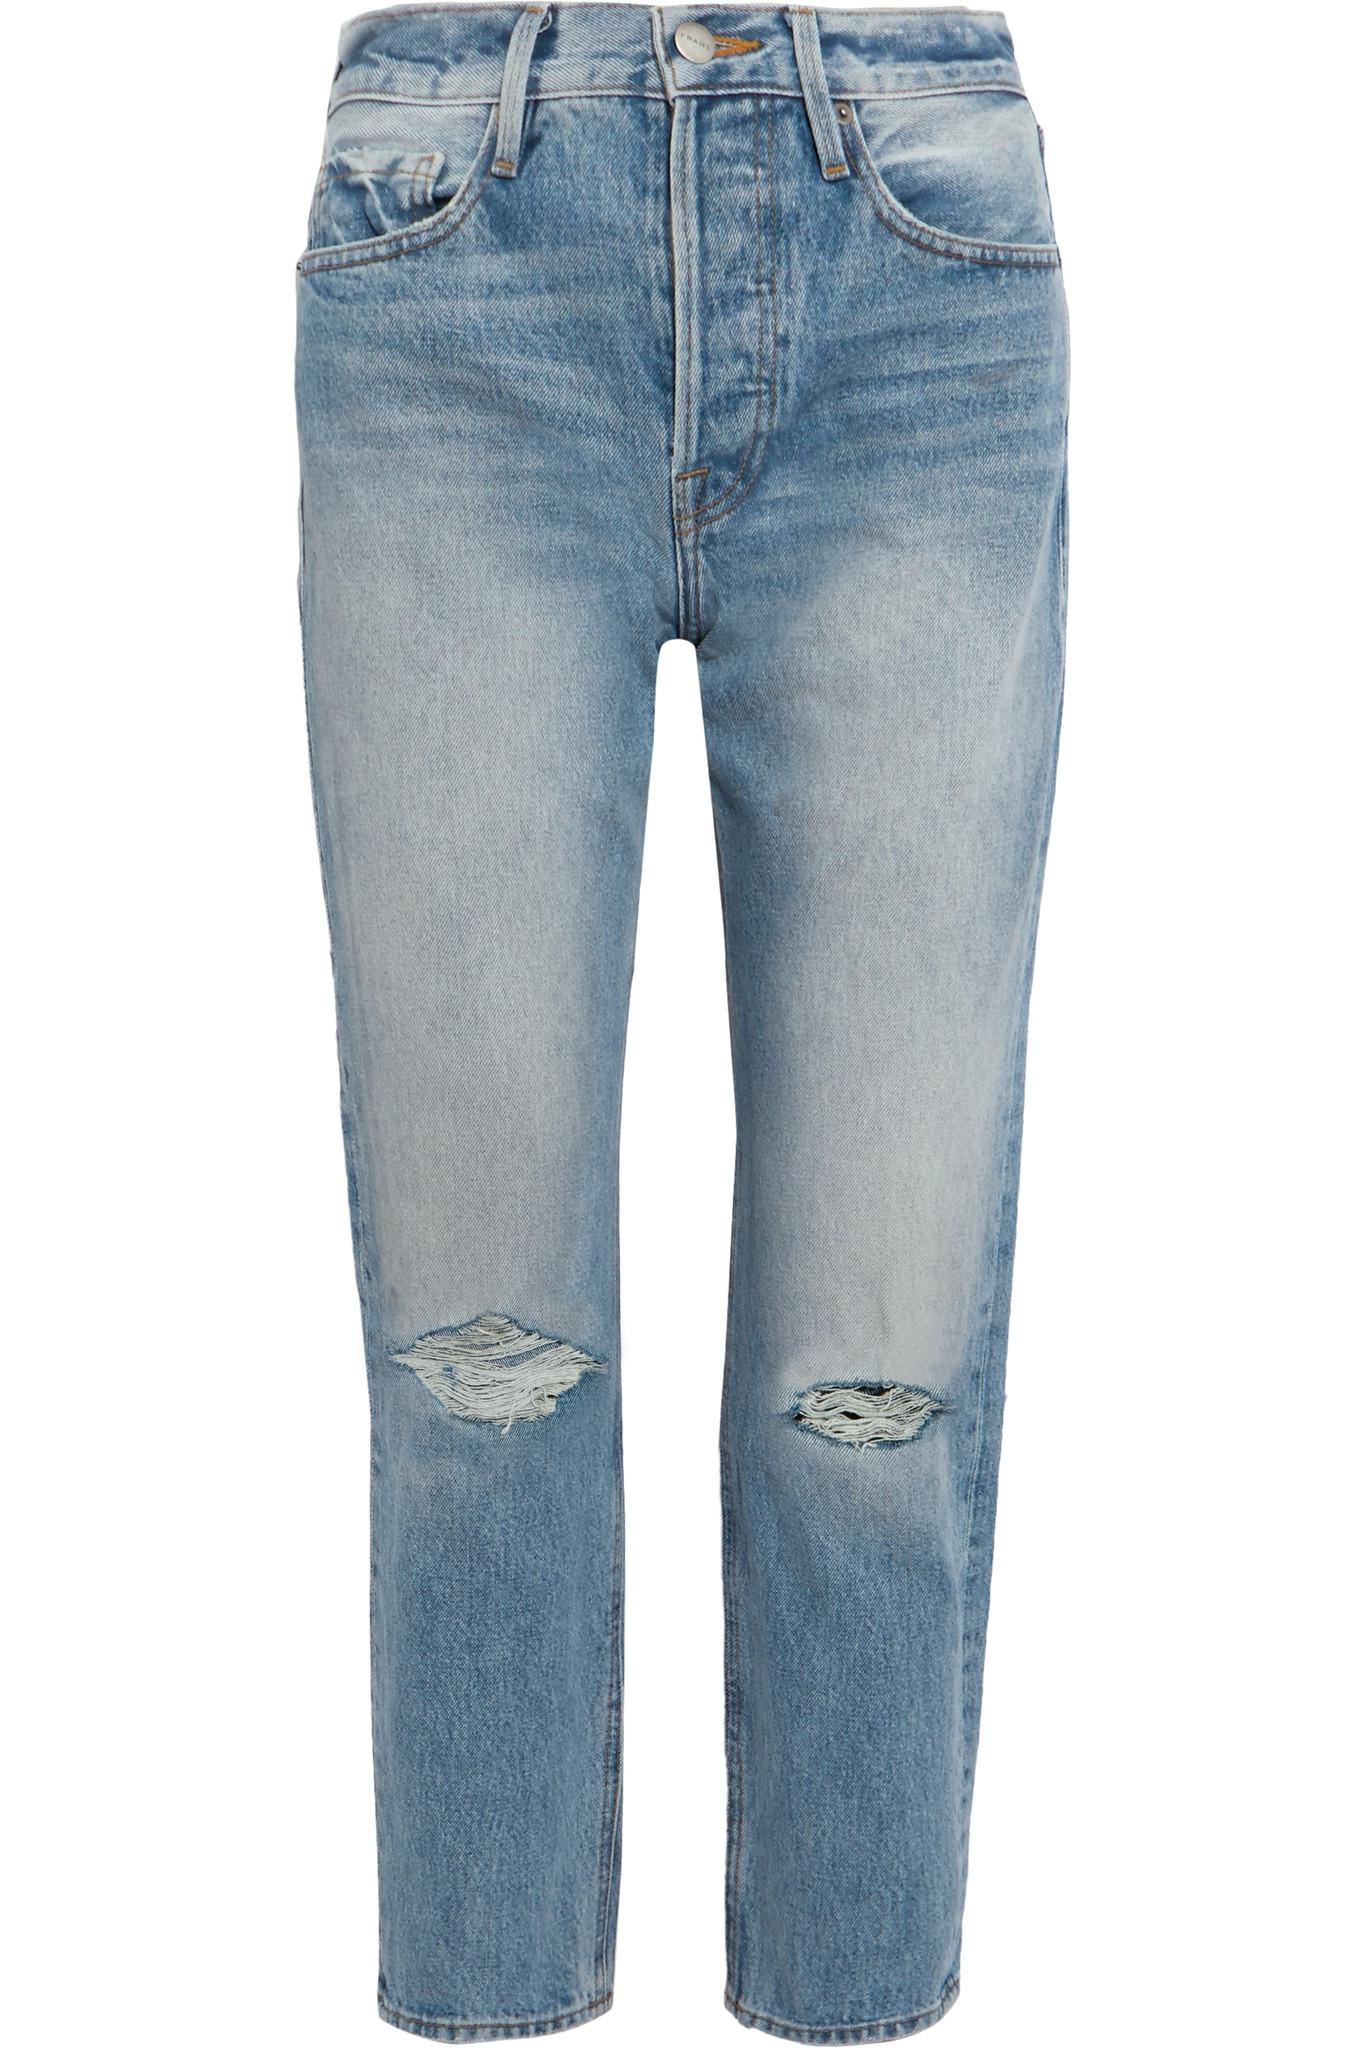 Outlet Pay With Paypal Le Original Distressed High-rise Straight-leg Jeans - Blue Frame Denim Sale Browse Store Clearance Best Sale snFMGjb